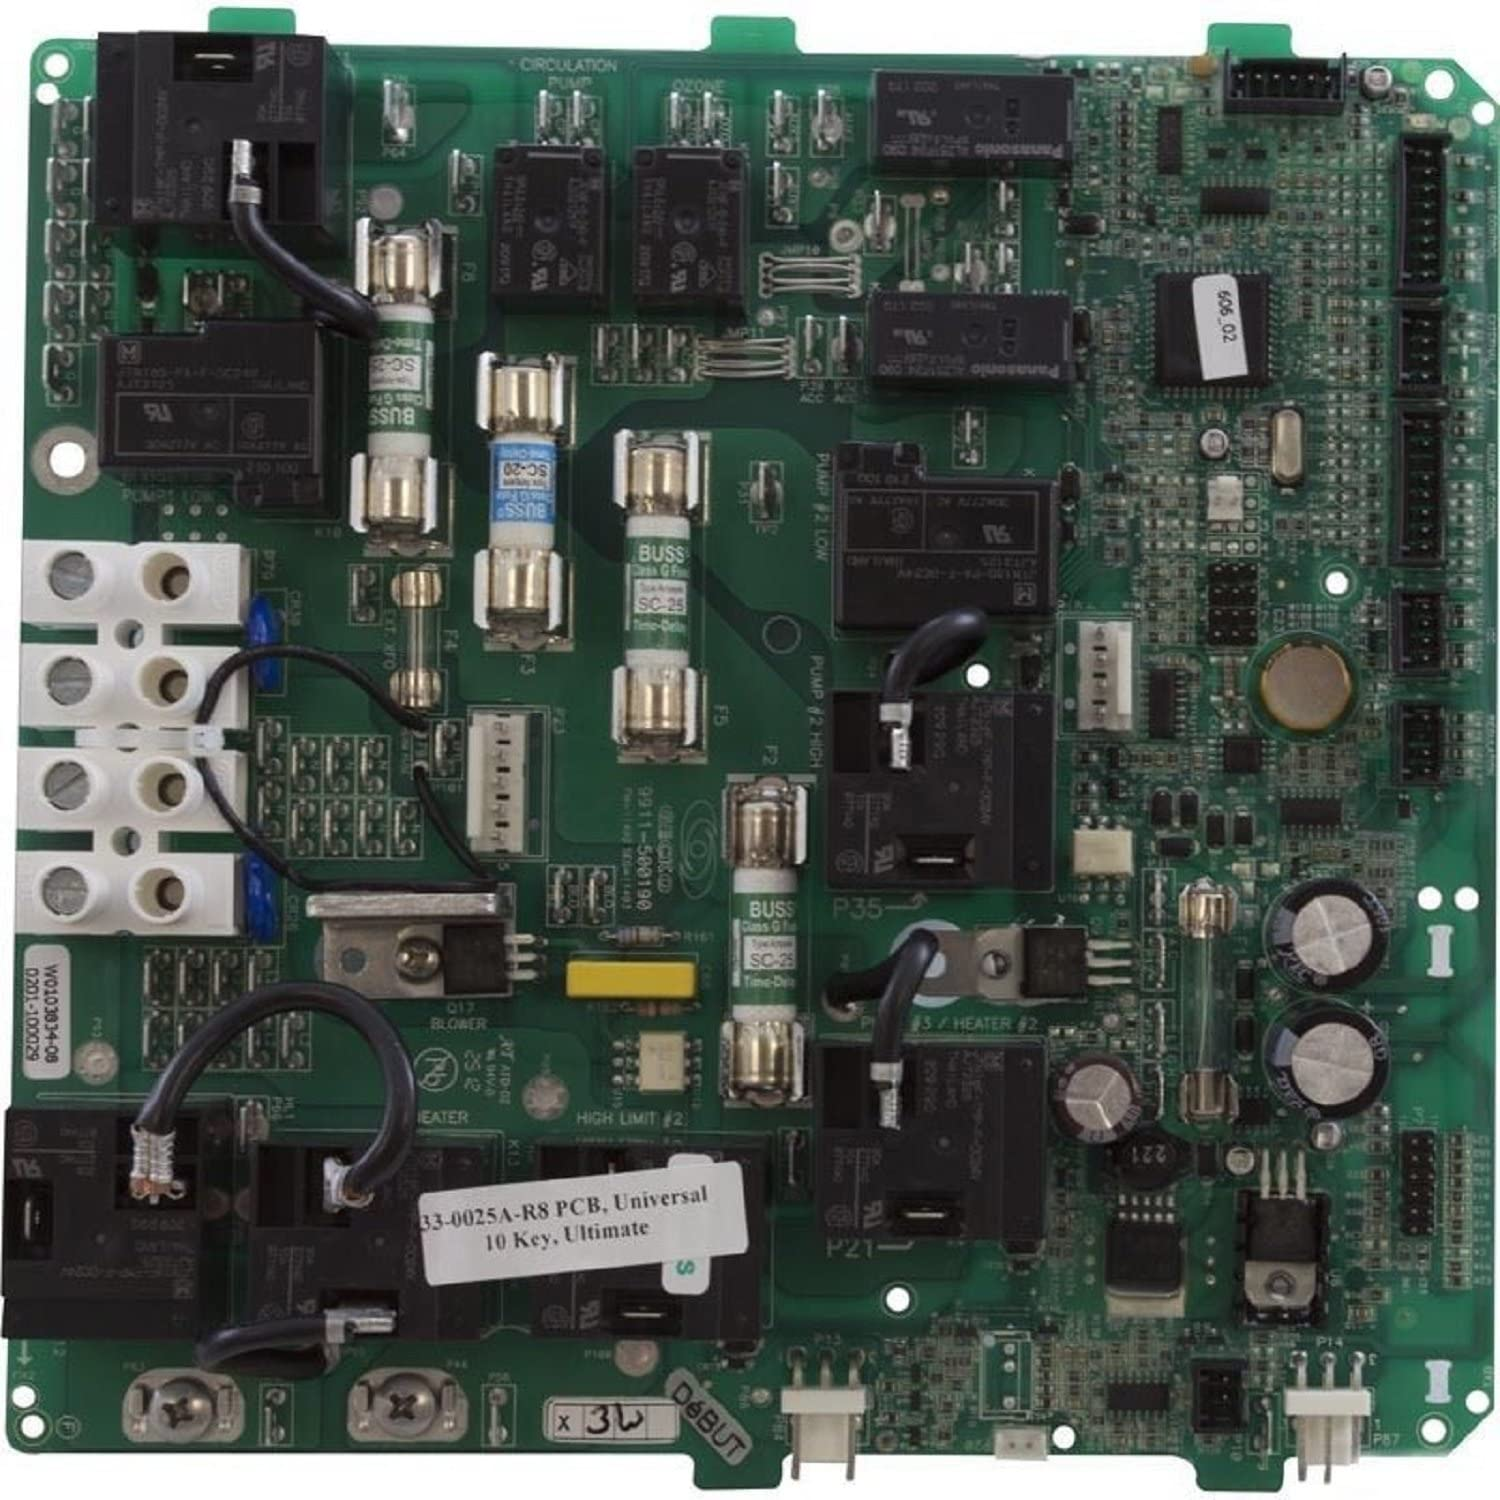 Amazon.com : Hydro-Quip 33-0025A-K 230V Circuit Board PCB Ultimate Plus :  Replacement Household Furnace Control Circuit Boards : Garden & Outdoor   Hydro Quip Heater Wiring Schematics      Amazon.com